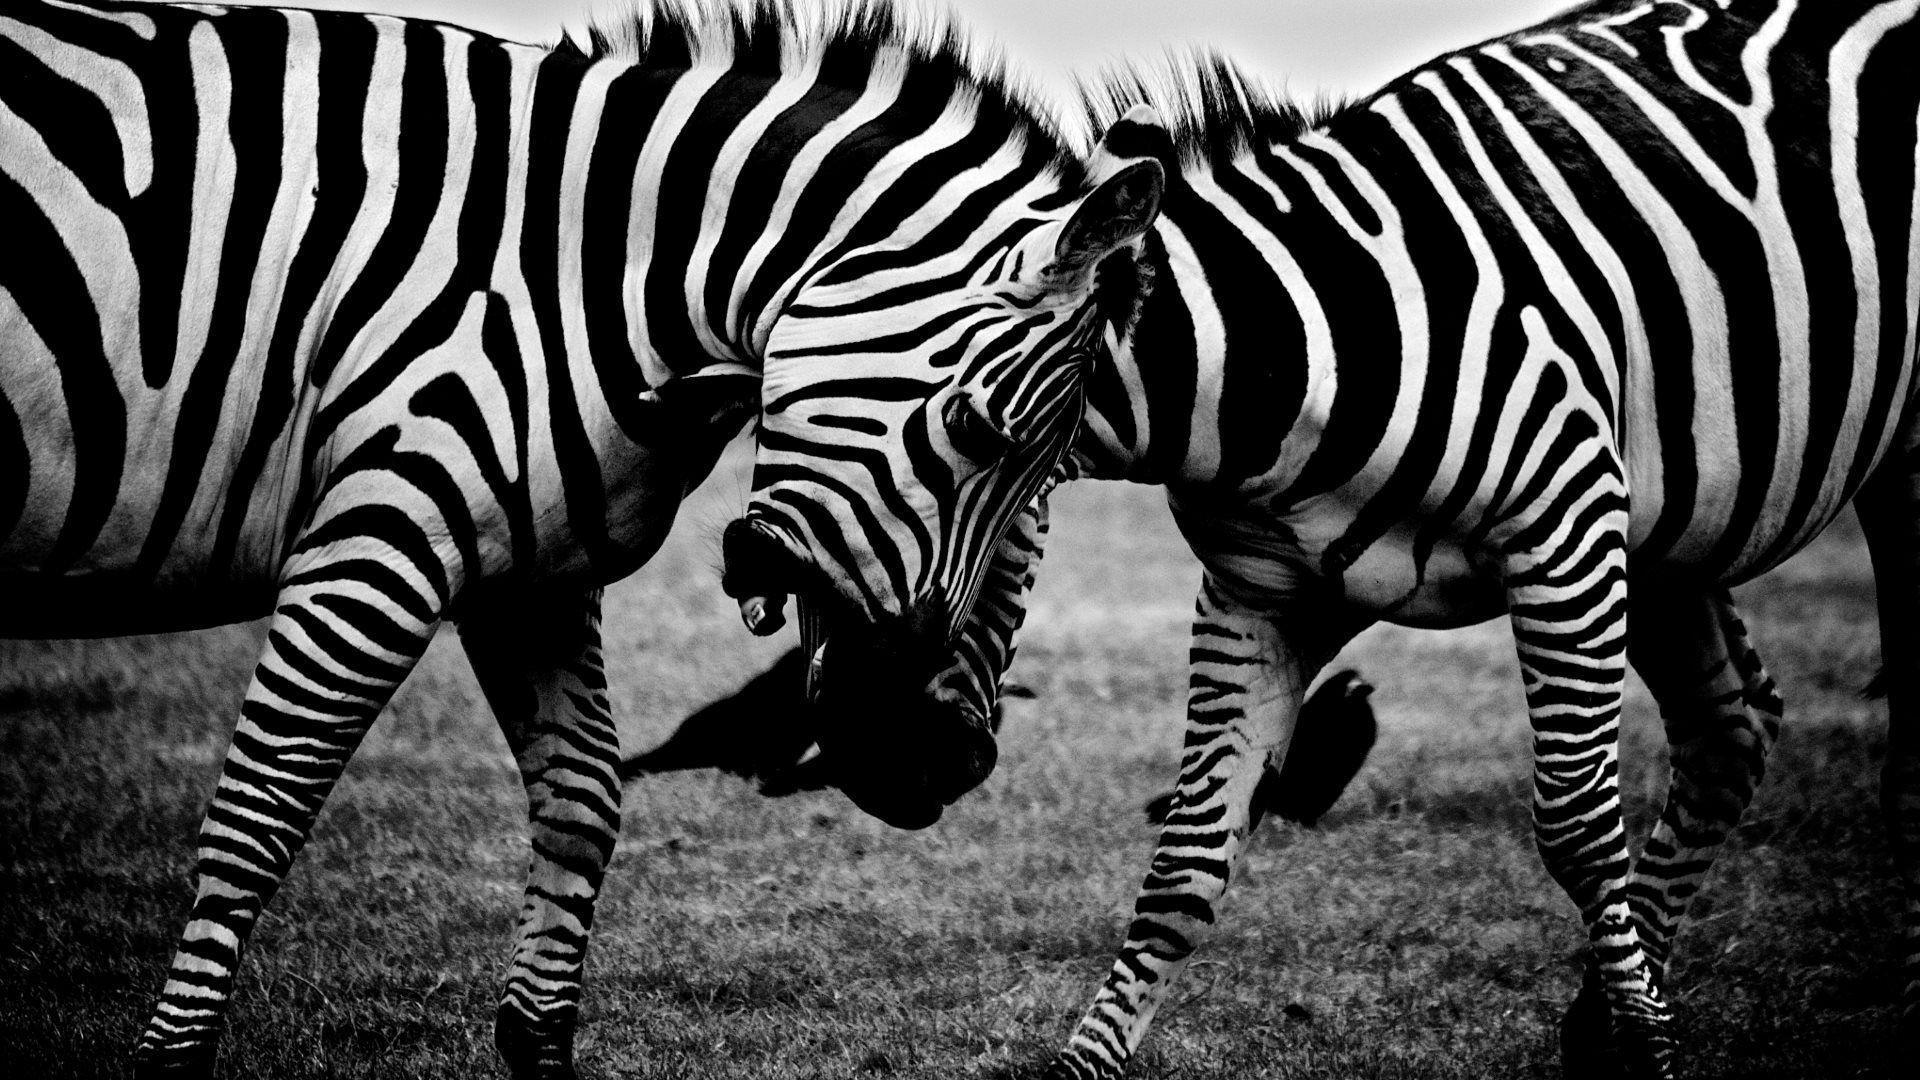 Fighting zebras HD desktop wallpapers : Widescreen : High